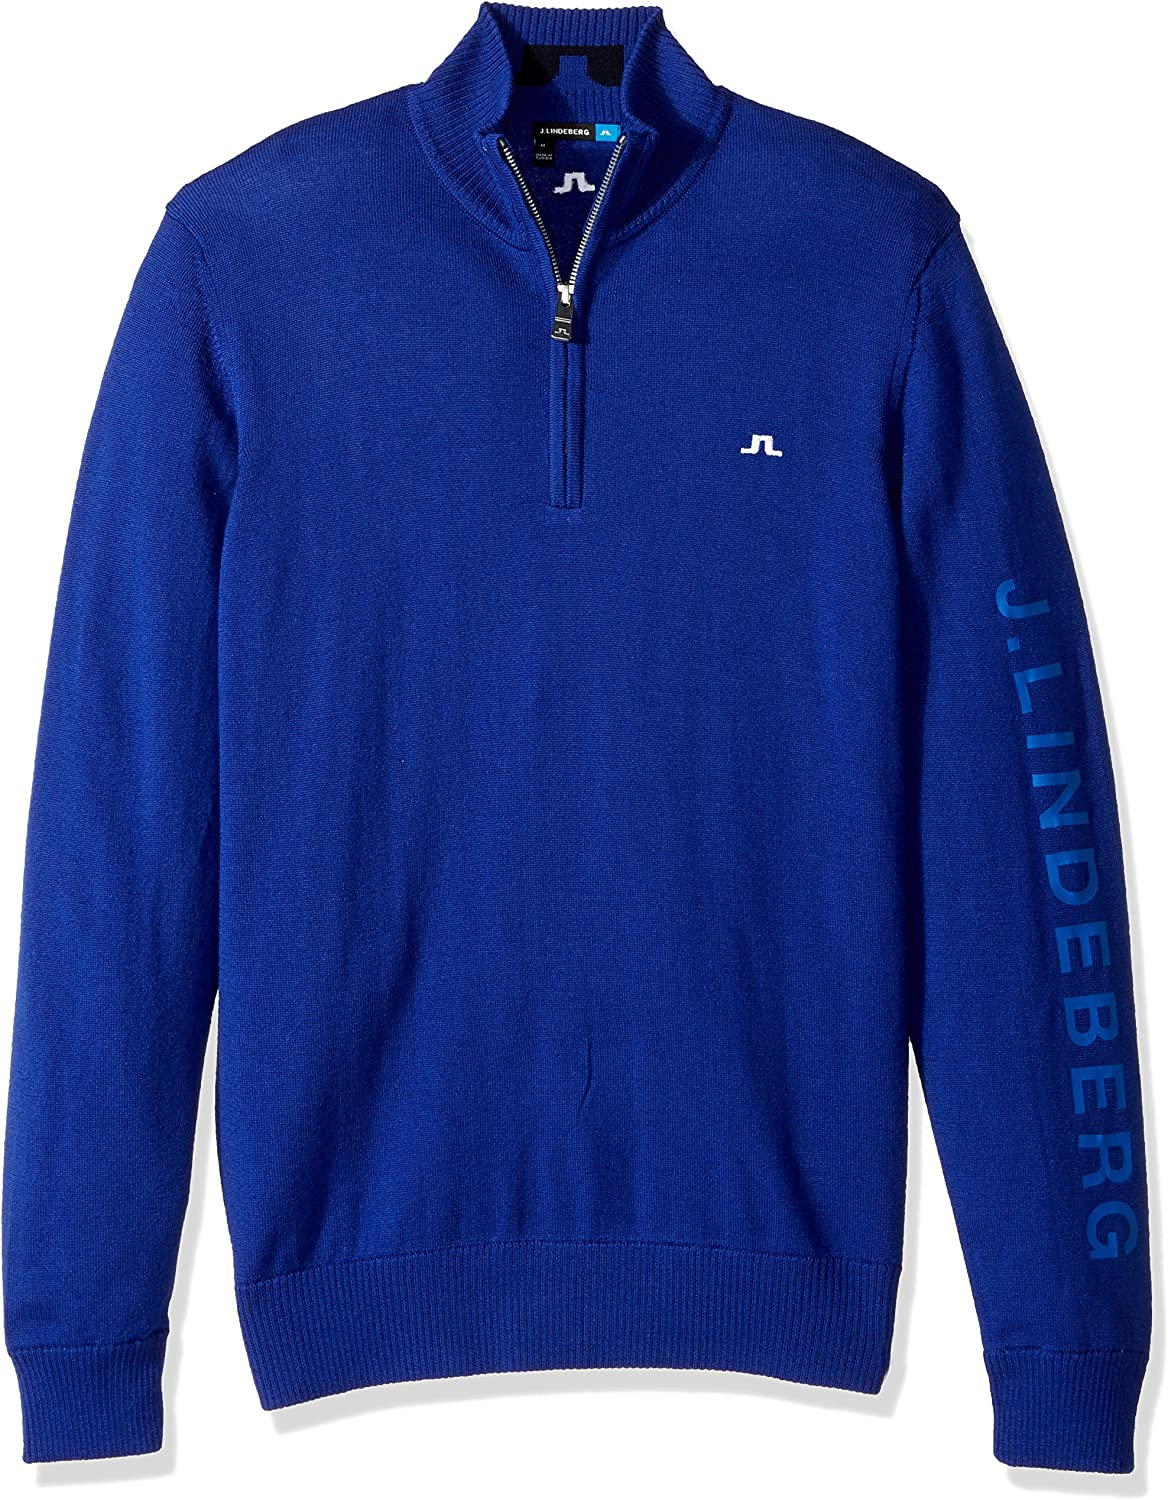 J.Lindeberg Mens 76MG122220408 Tour Merino Sweater Sweatshirt  blueee